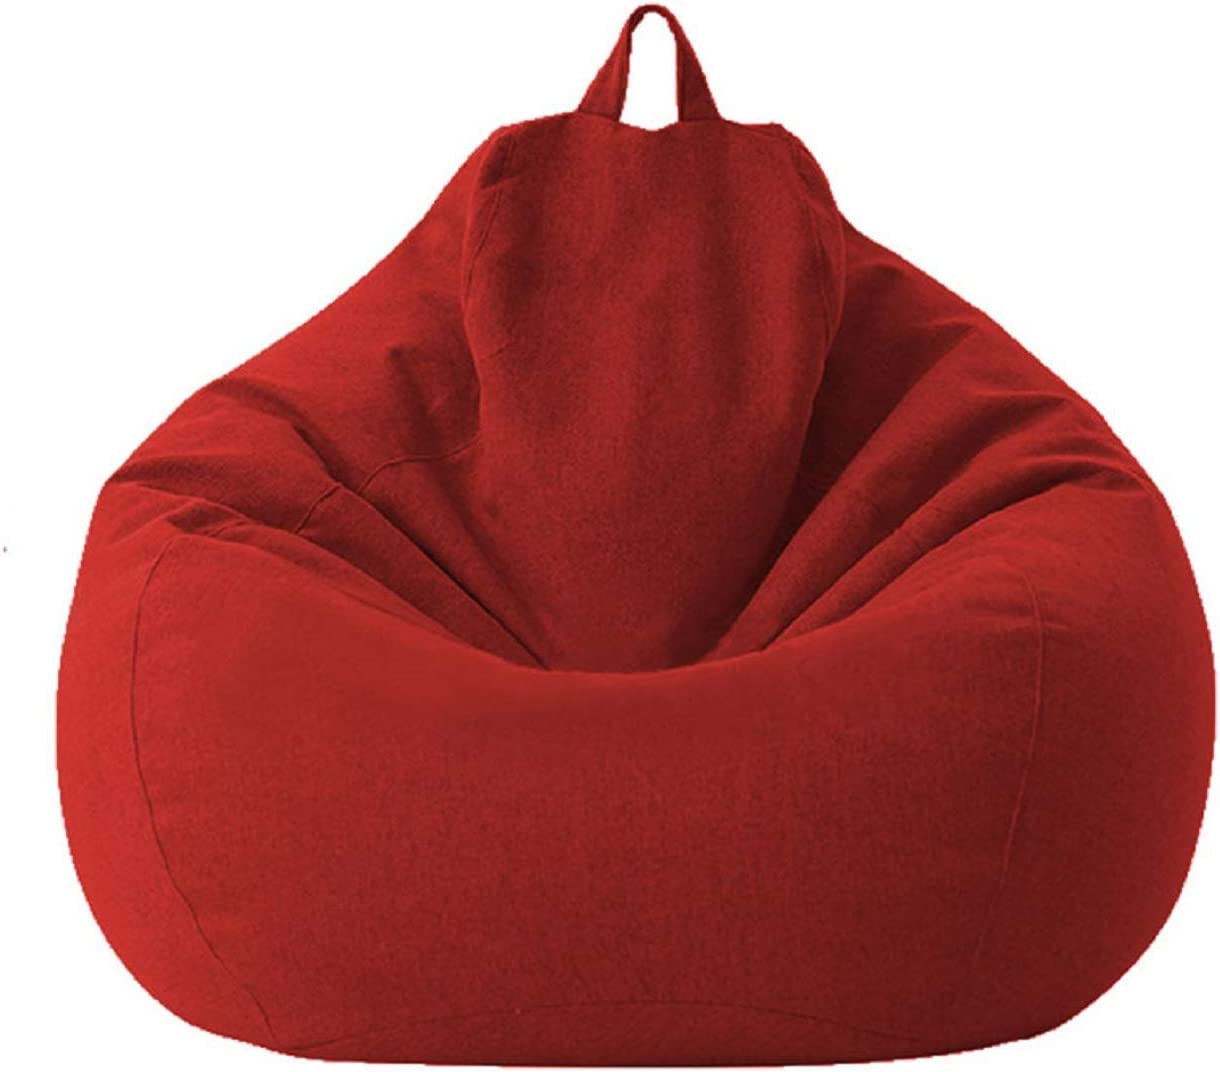 Mekiyo Bean Bag Sofa Chairs Cover, Classic Lazy Lounger Bean Bag Storage Chair for Adults and Kids for Home Garden Lounge Living Room Indoor Outdoor(Red 01, 27.531.5 in)